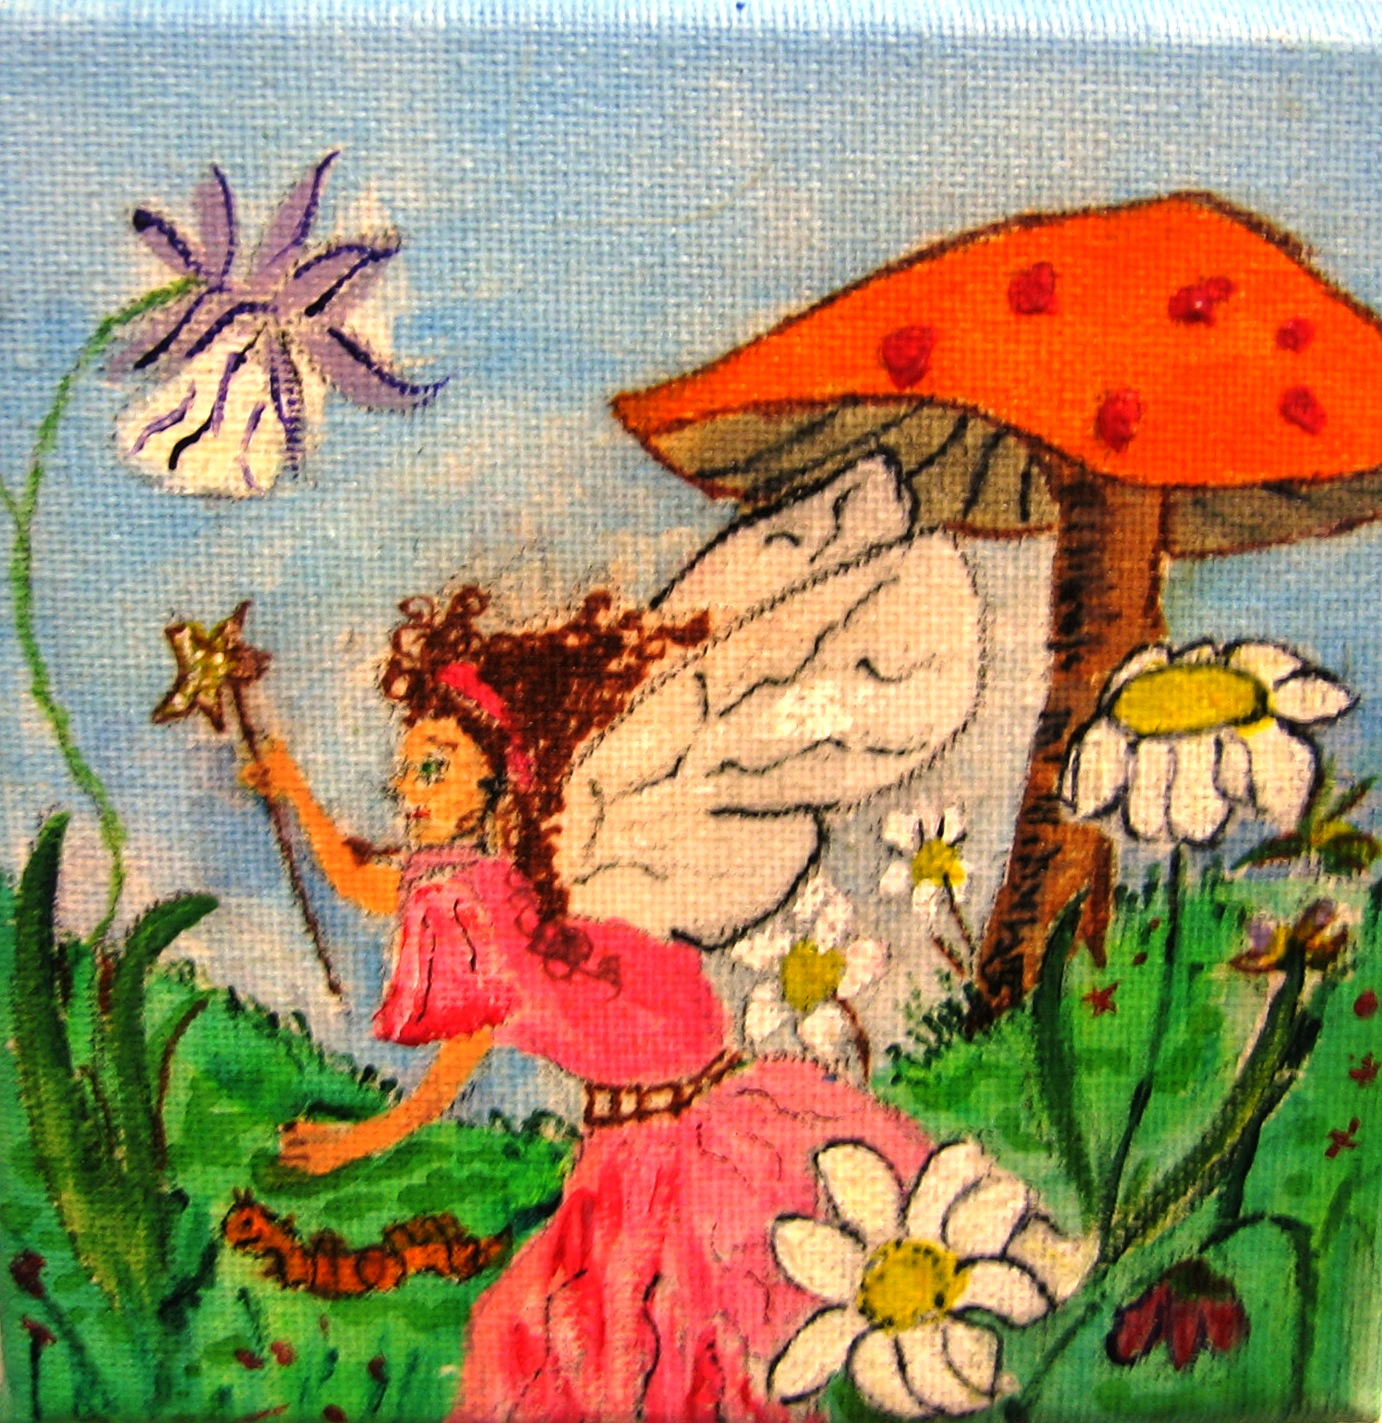 Childrens Wall Art Childrens Wall Art Themed Canvas Paintings For Kids Nursery